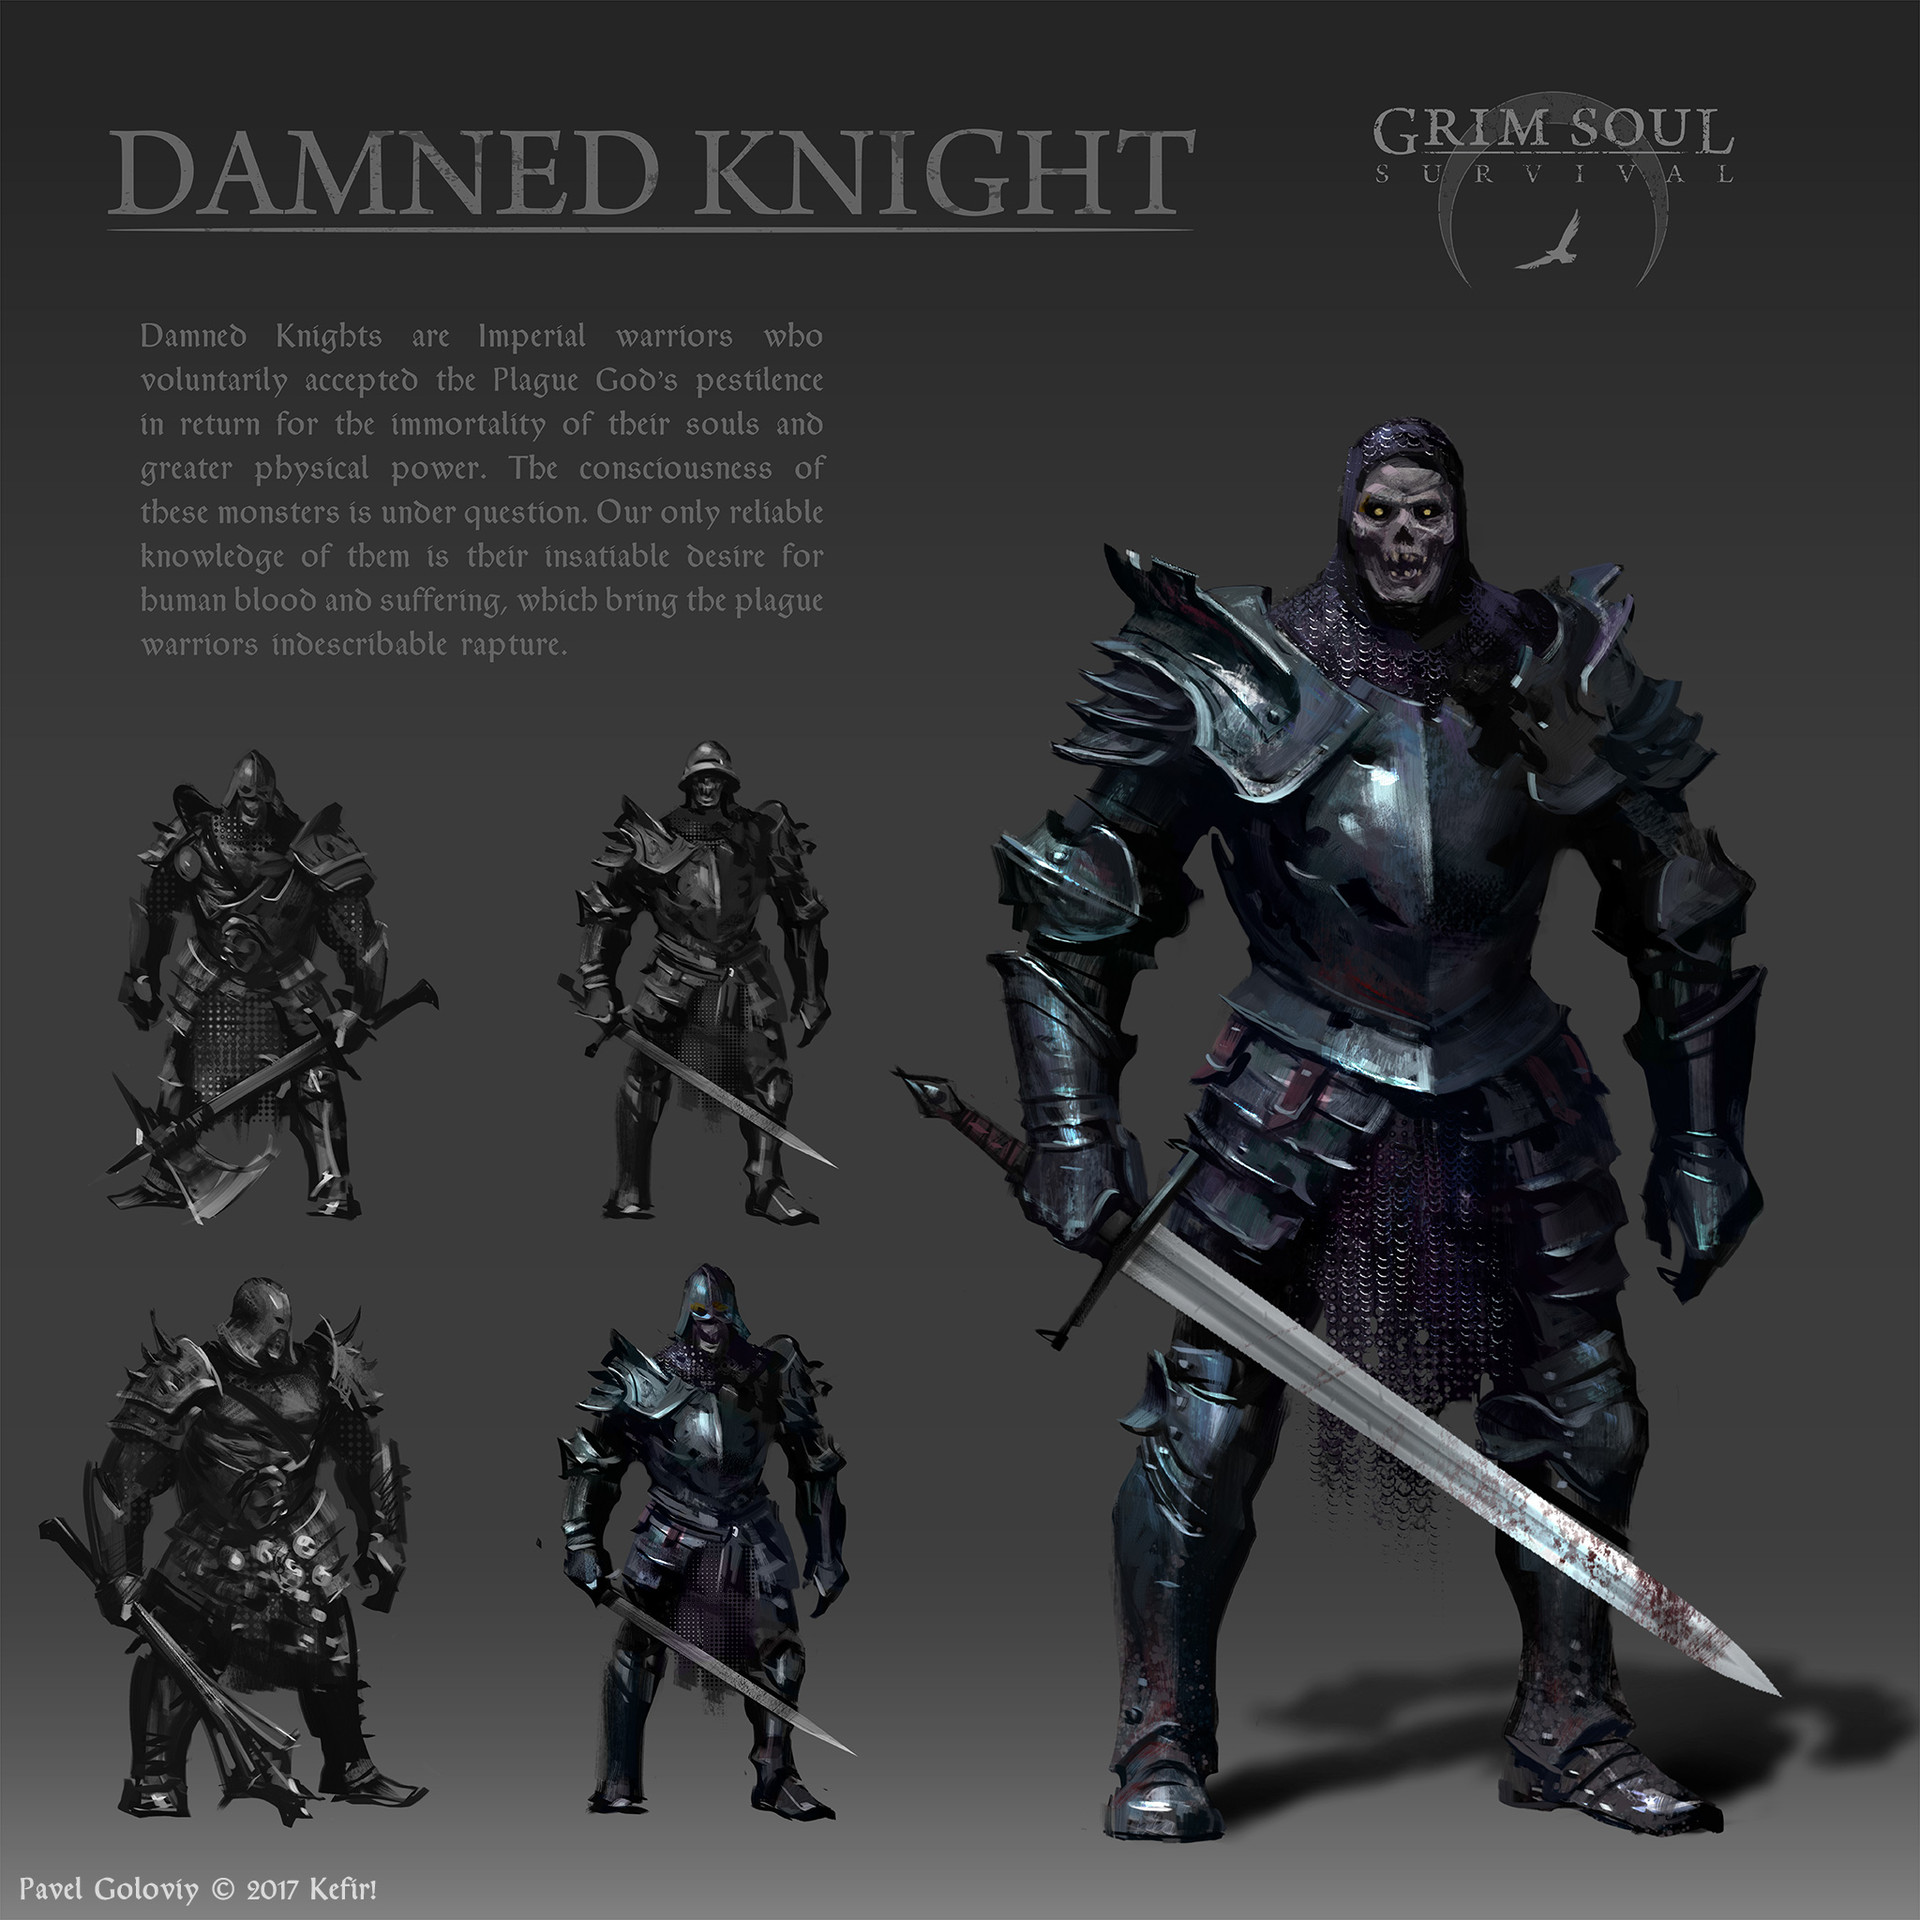 Damned Knight